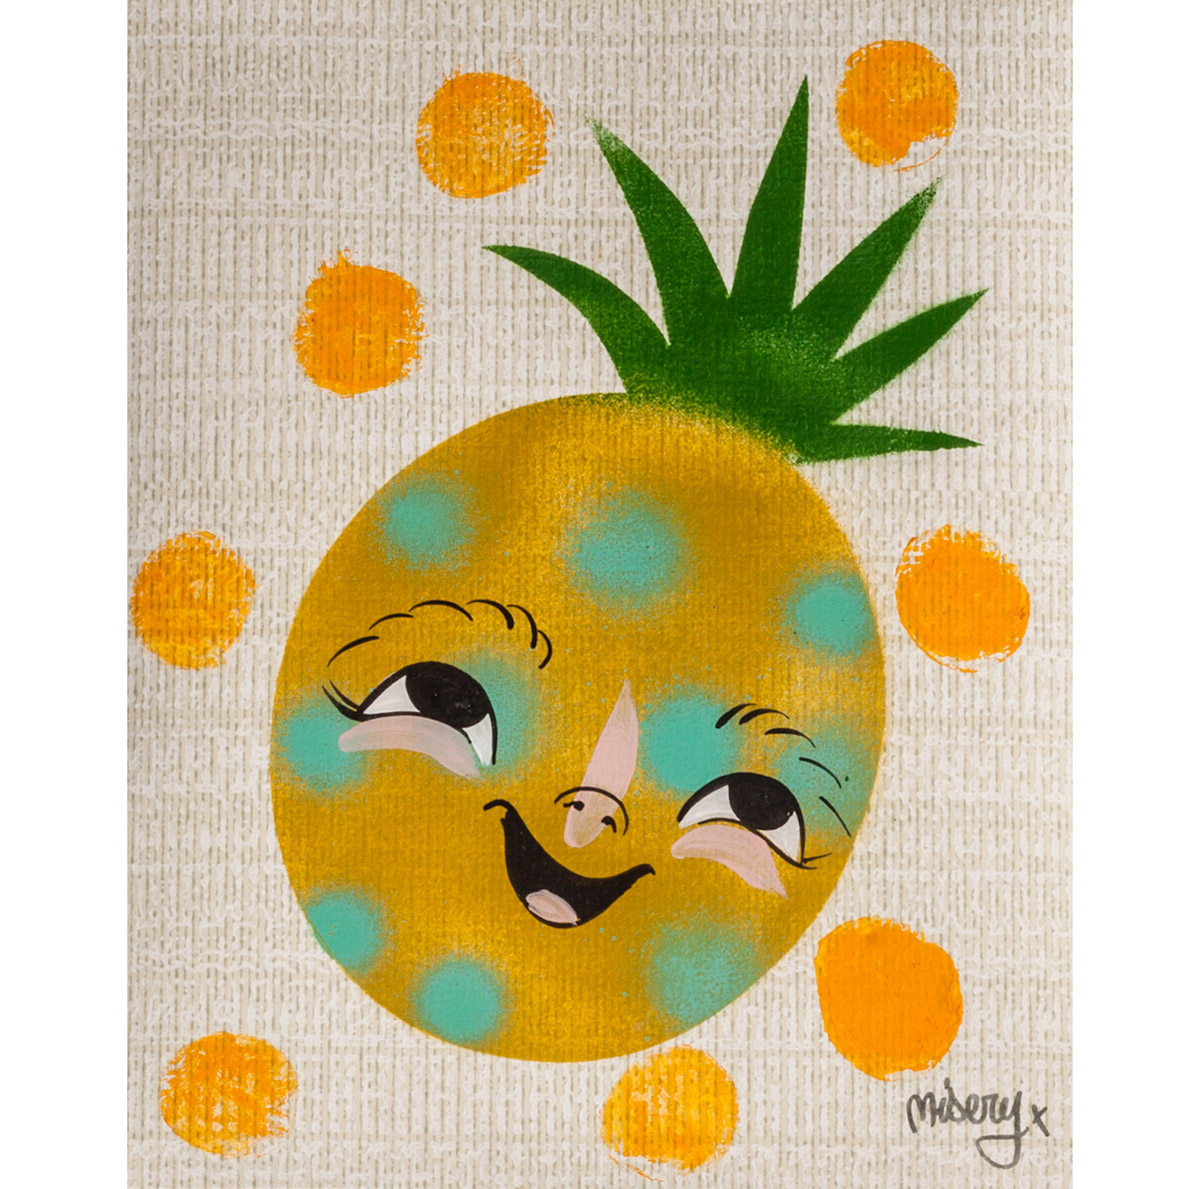 Misery-Donnie.jpg